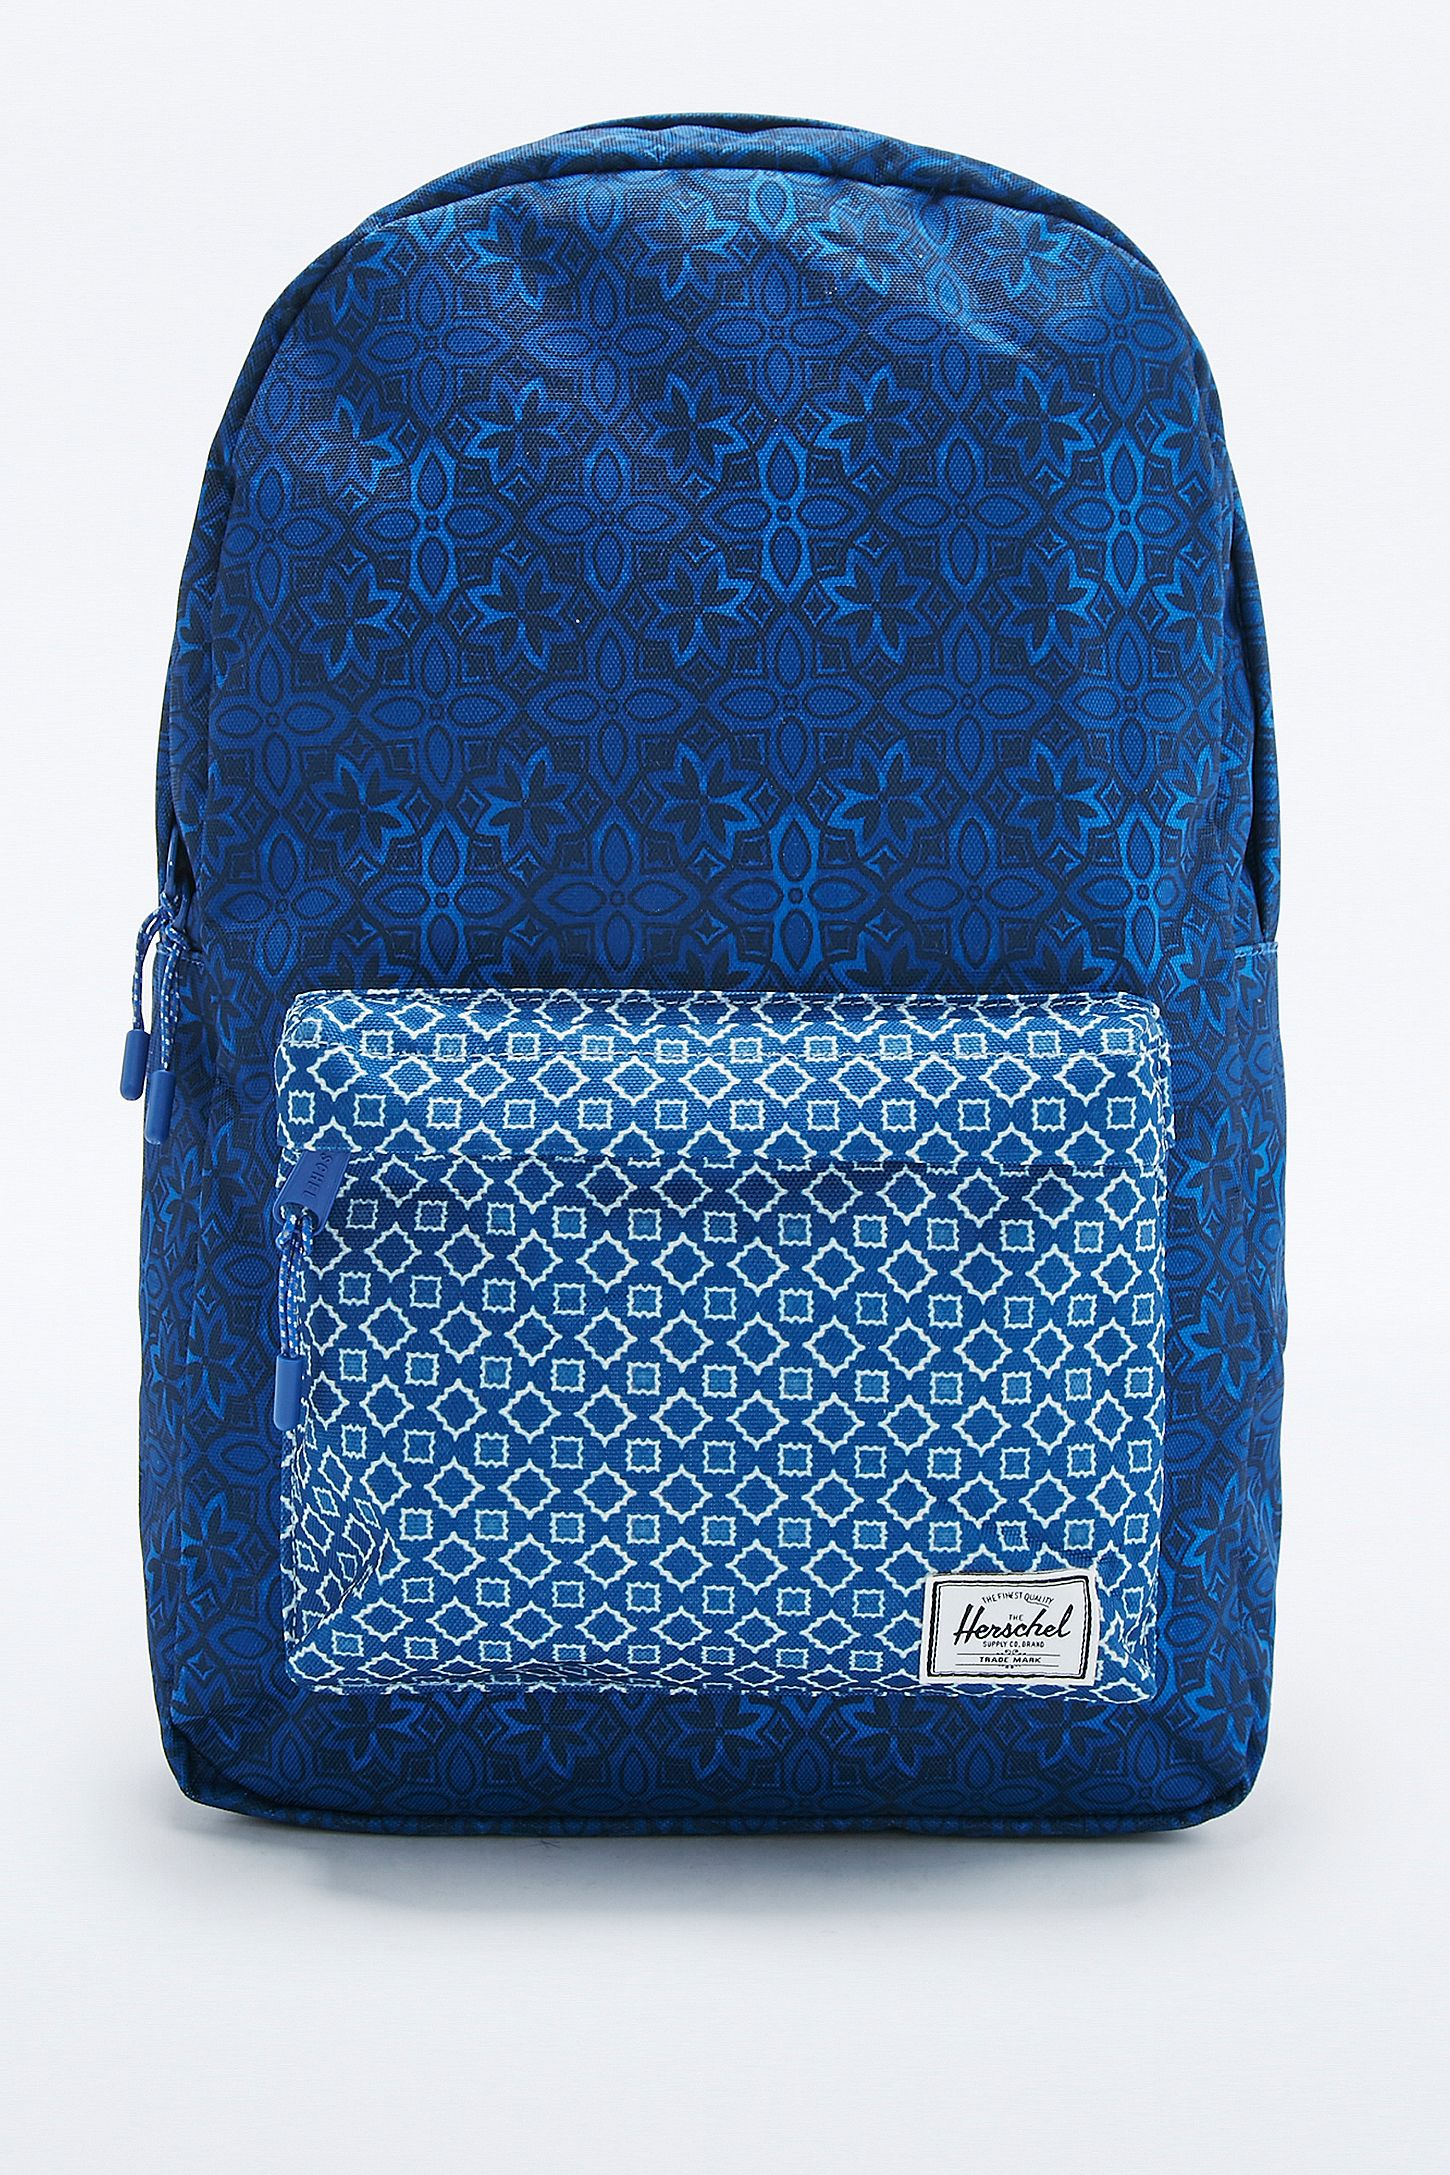 b6346dda4f5 Herschel Supply co. Classic 22L Khatam Navy Backpack. Click on image to  zoom. Hover to zoom. Double Tap to Zoom